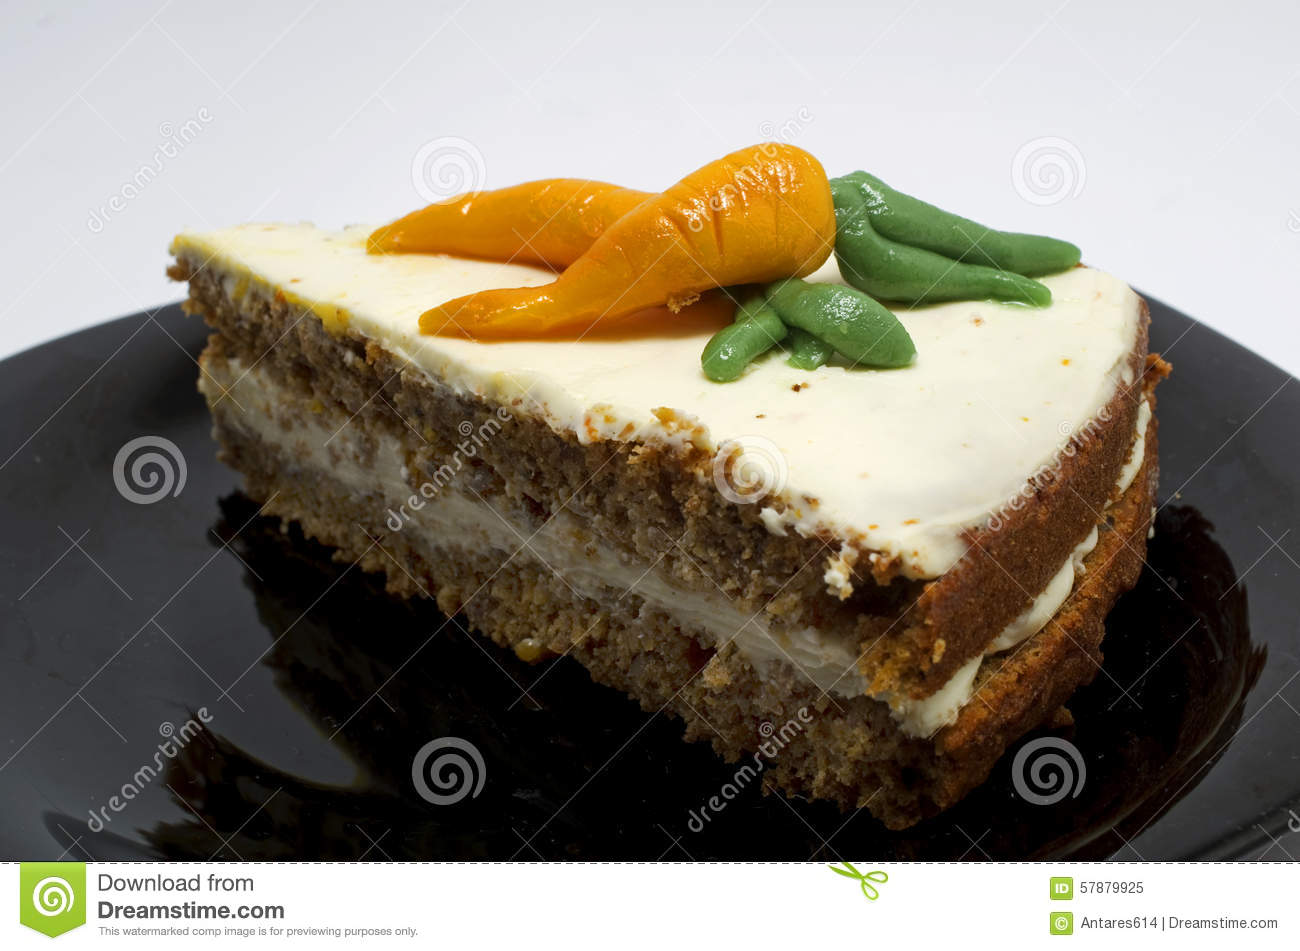 Download Carrot cake stock image. Image of plate, healthy, veggie - 57879925